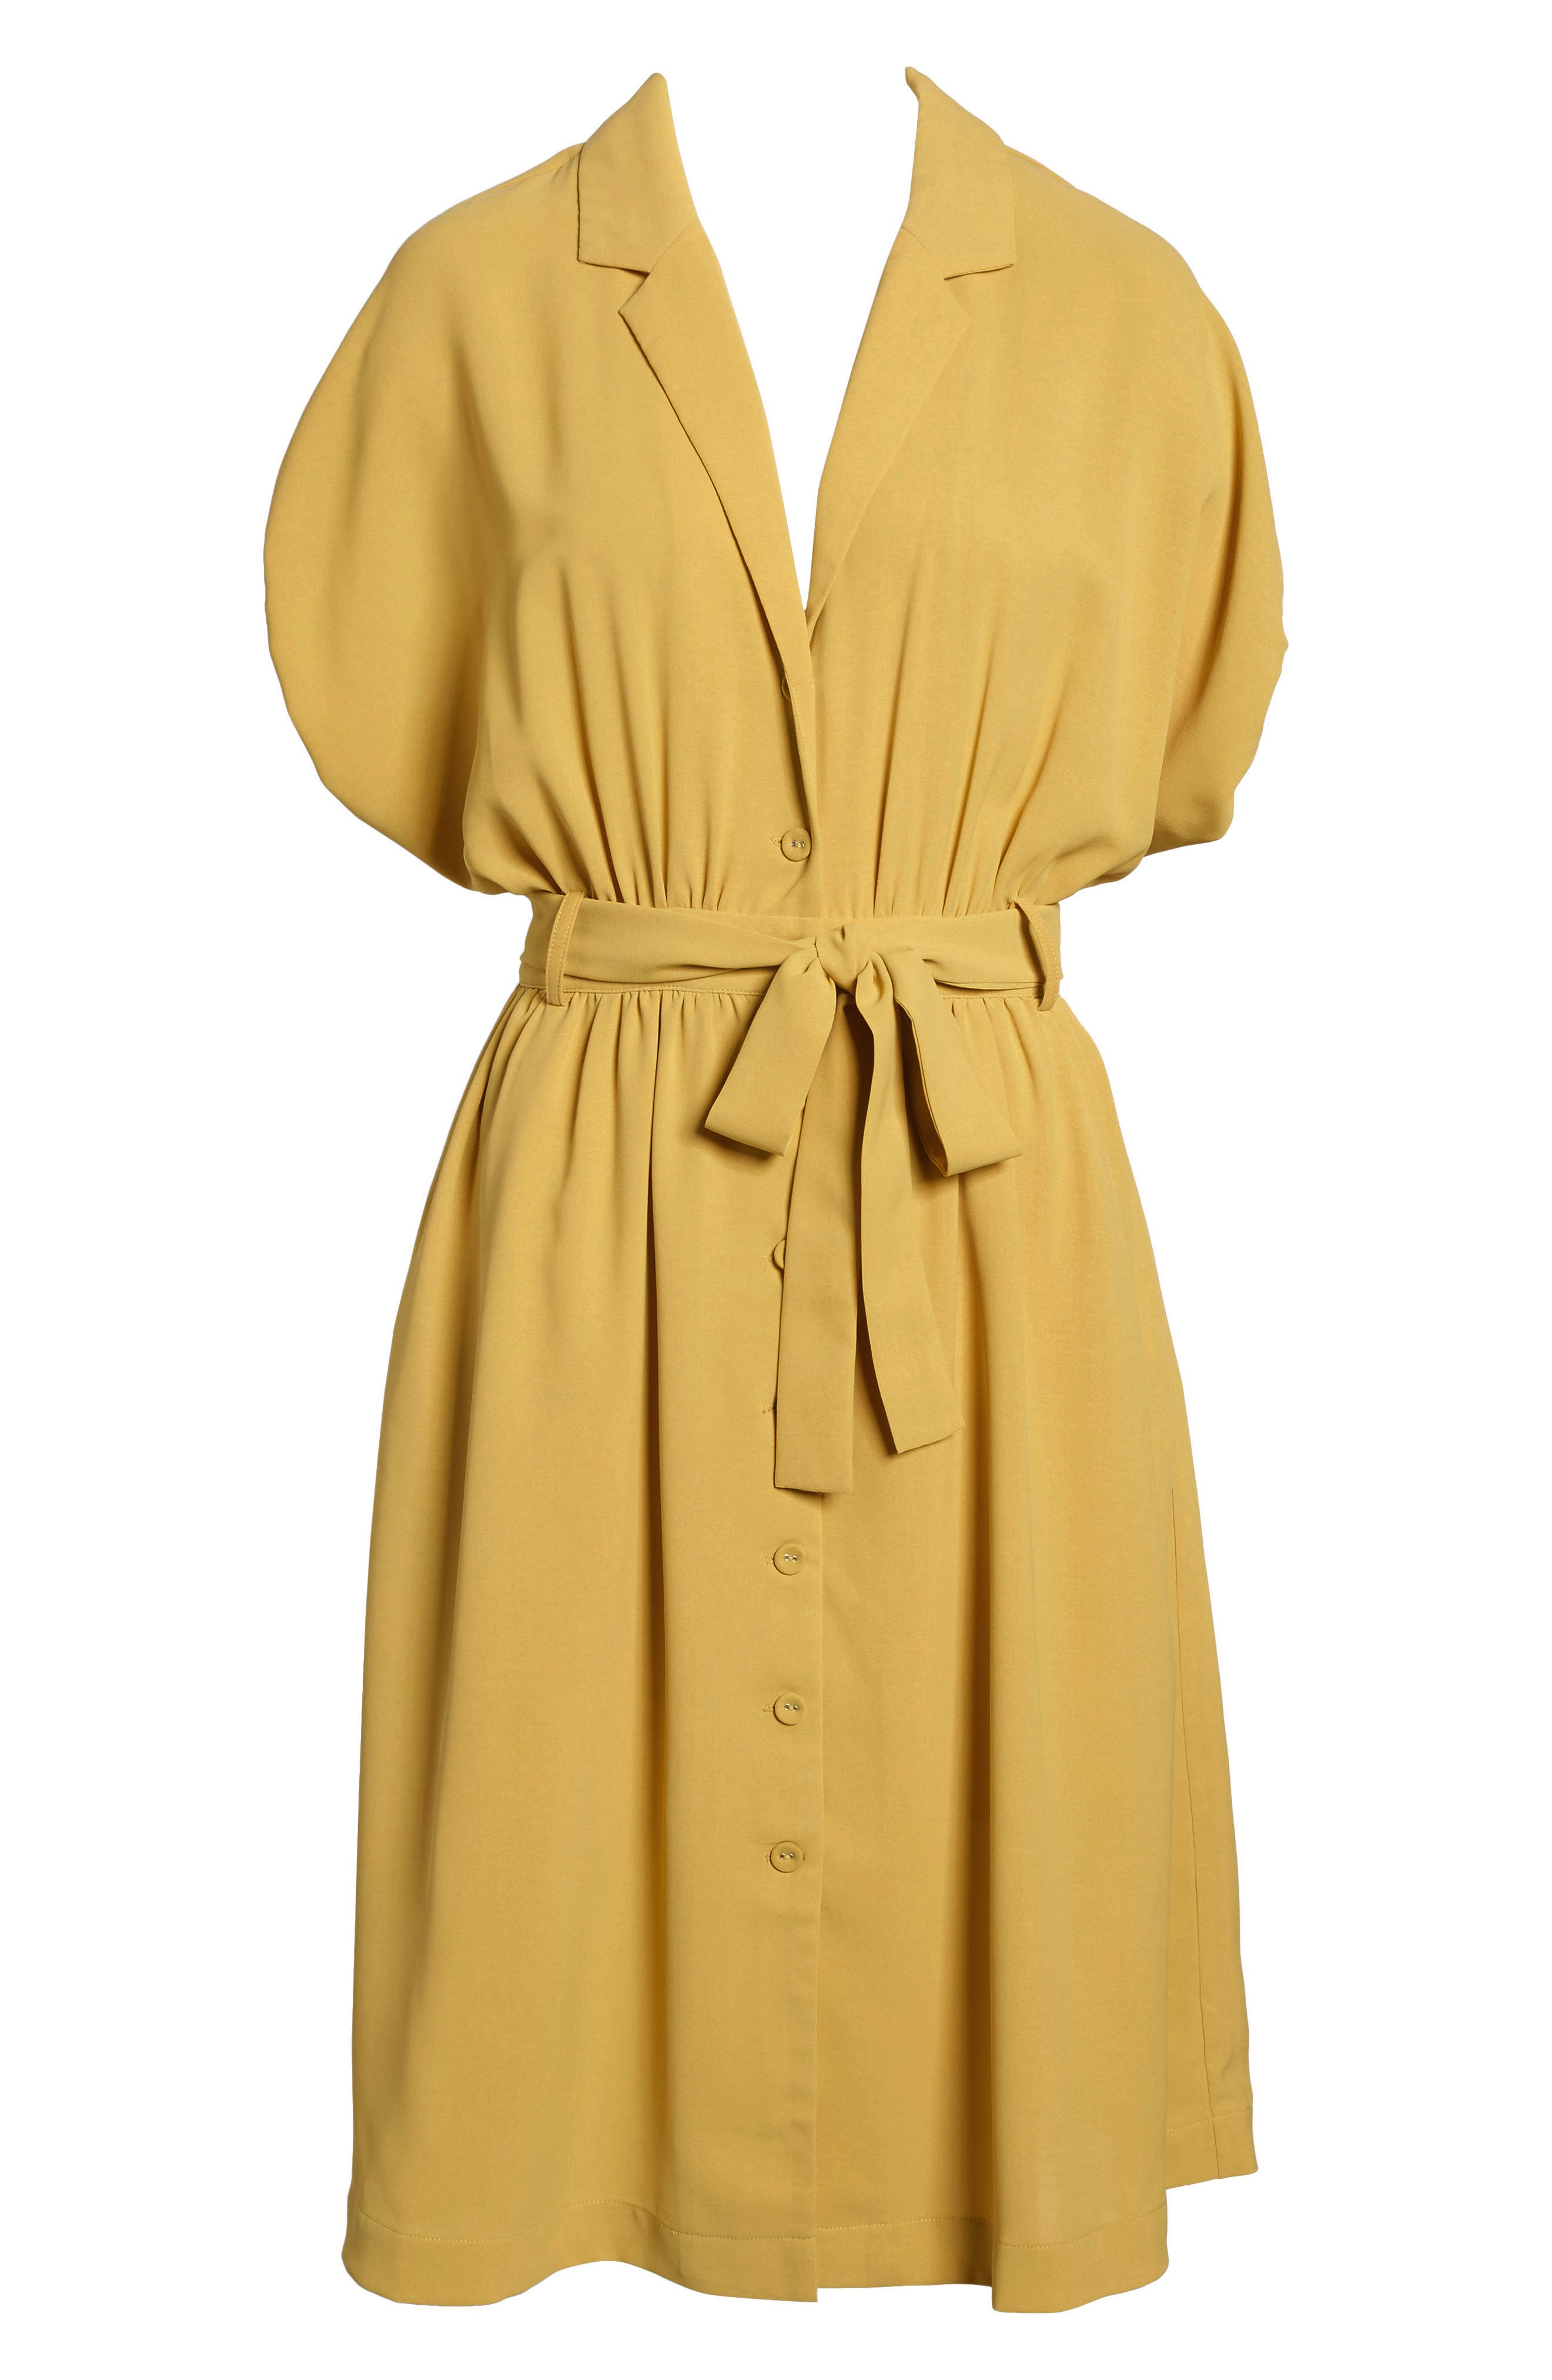 Chriselle x J.O.A. Cocoon Sleeve Dress,                             Alternate thumbnail 7, color,                             700